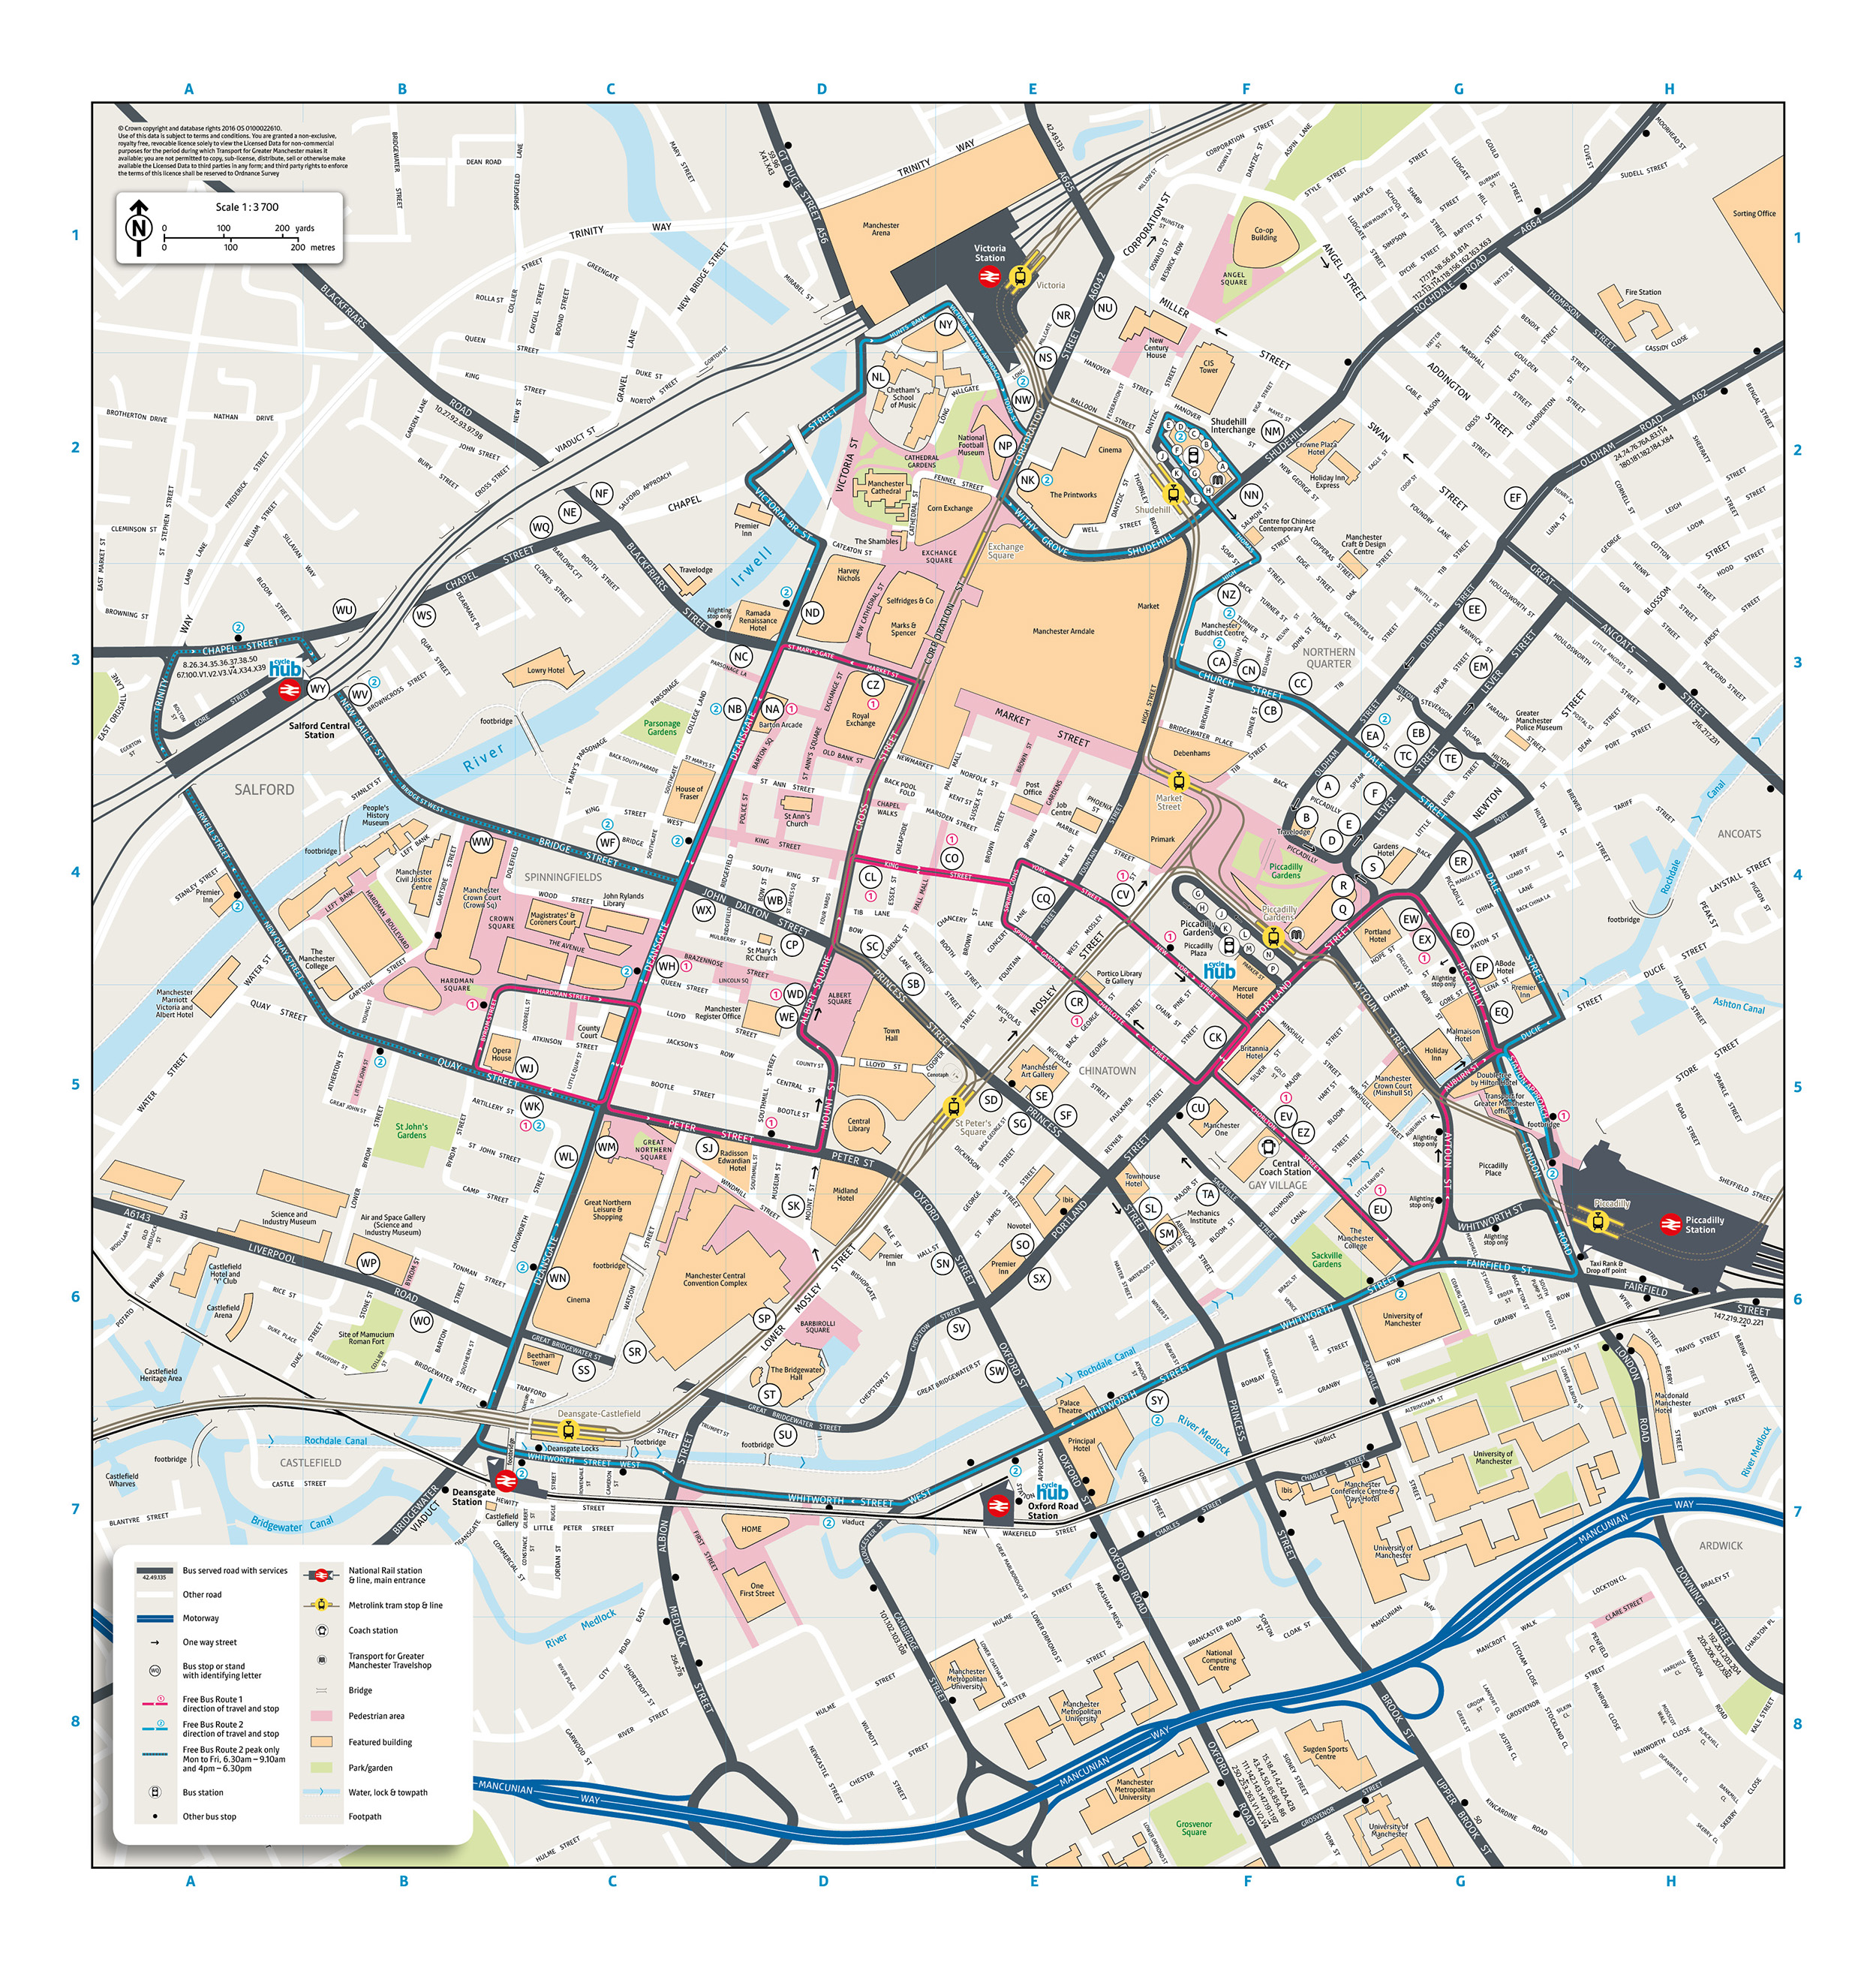 Manchester City Map Manchester city centre map | Transport for Greater Manchester